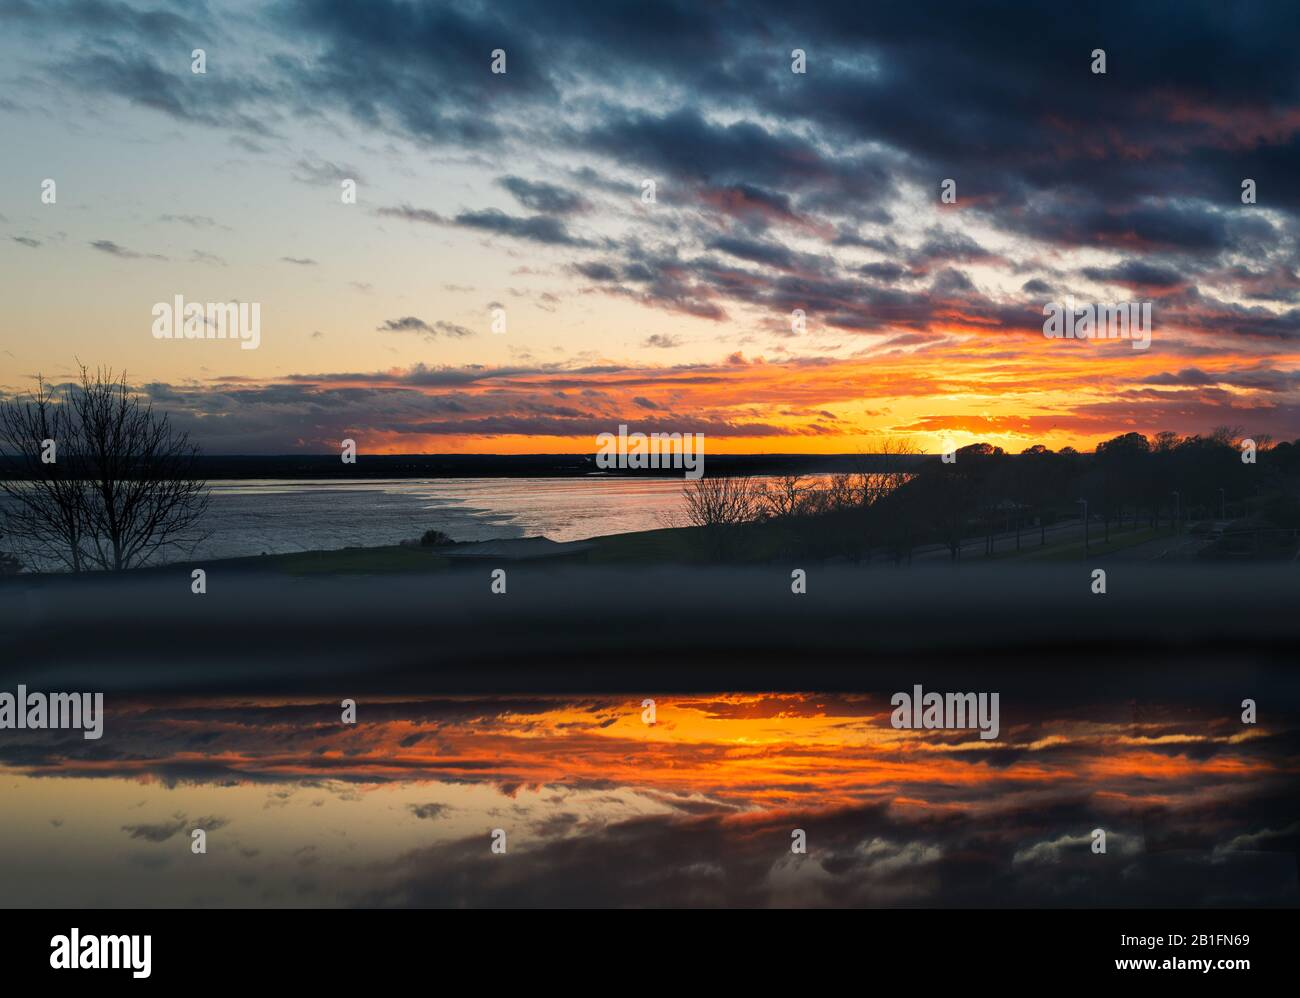 Cloudy sunset over Pegwell Bay, Kent with a foreground reflection in an open fan light window. Stock Photo